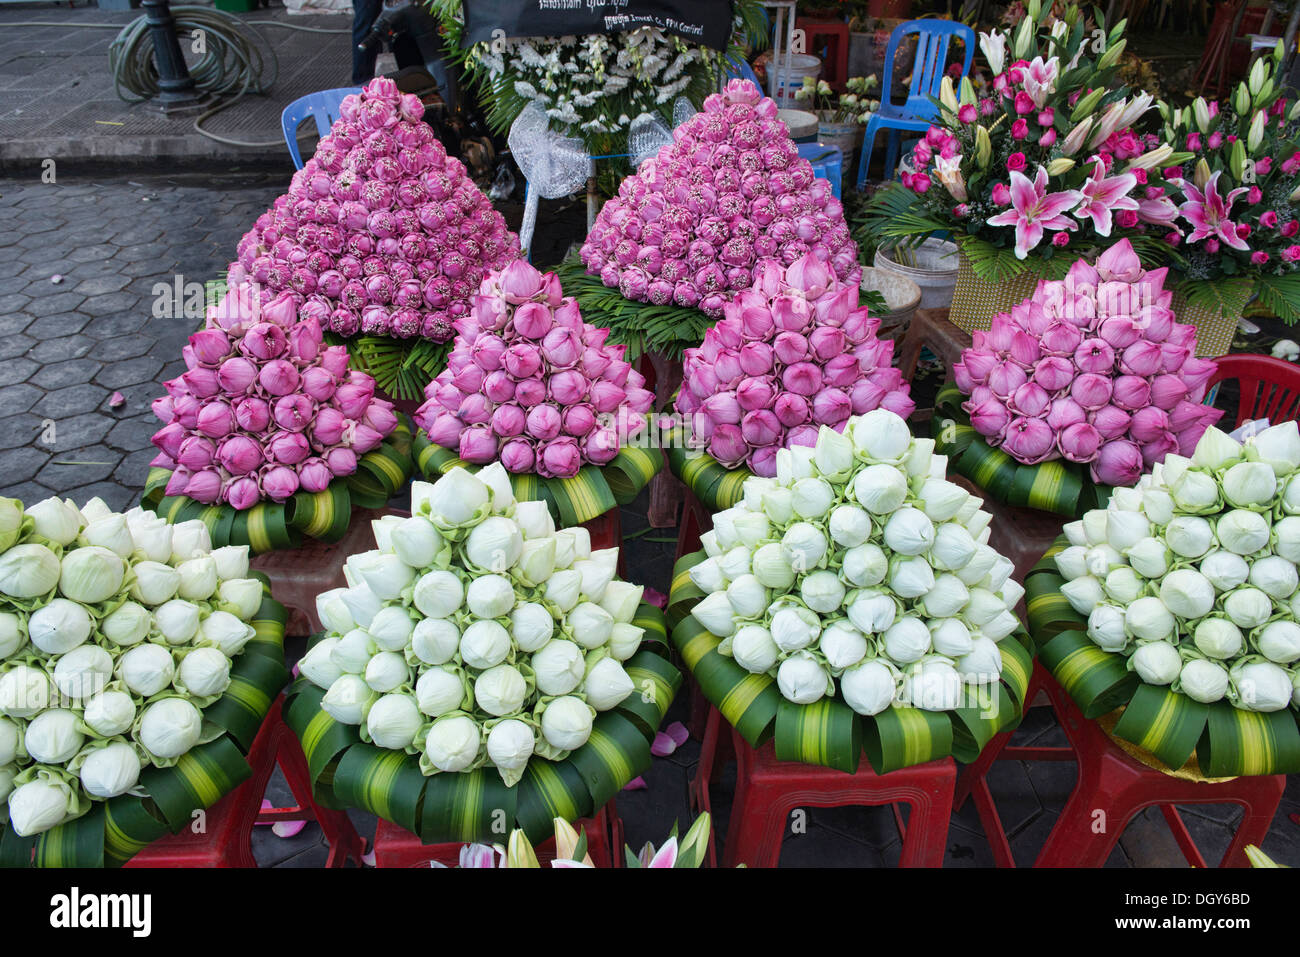 Lotus Flowers For Sale Stock Photos Lotus Flowers For Sale Stock